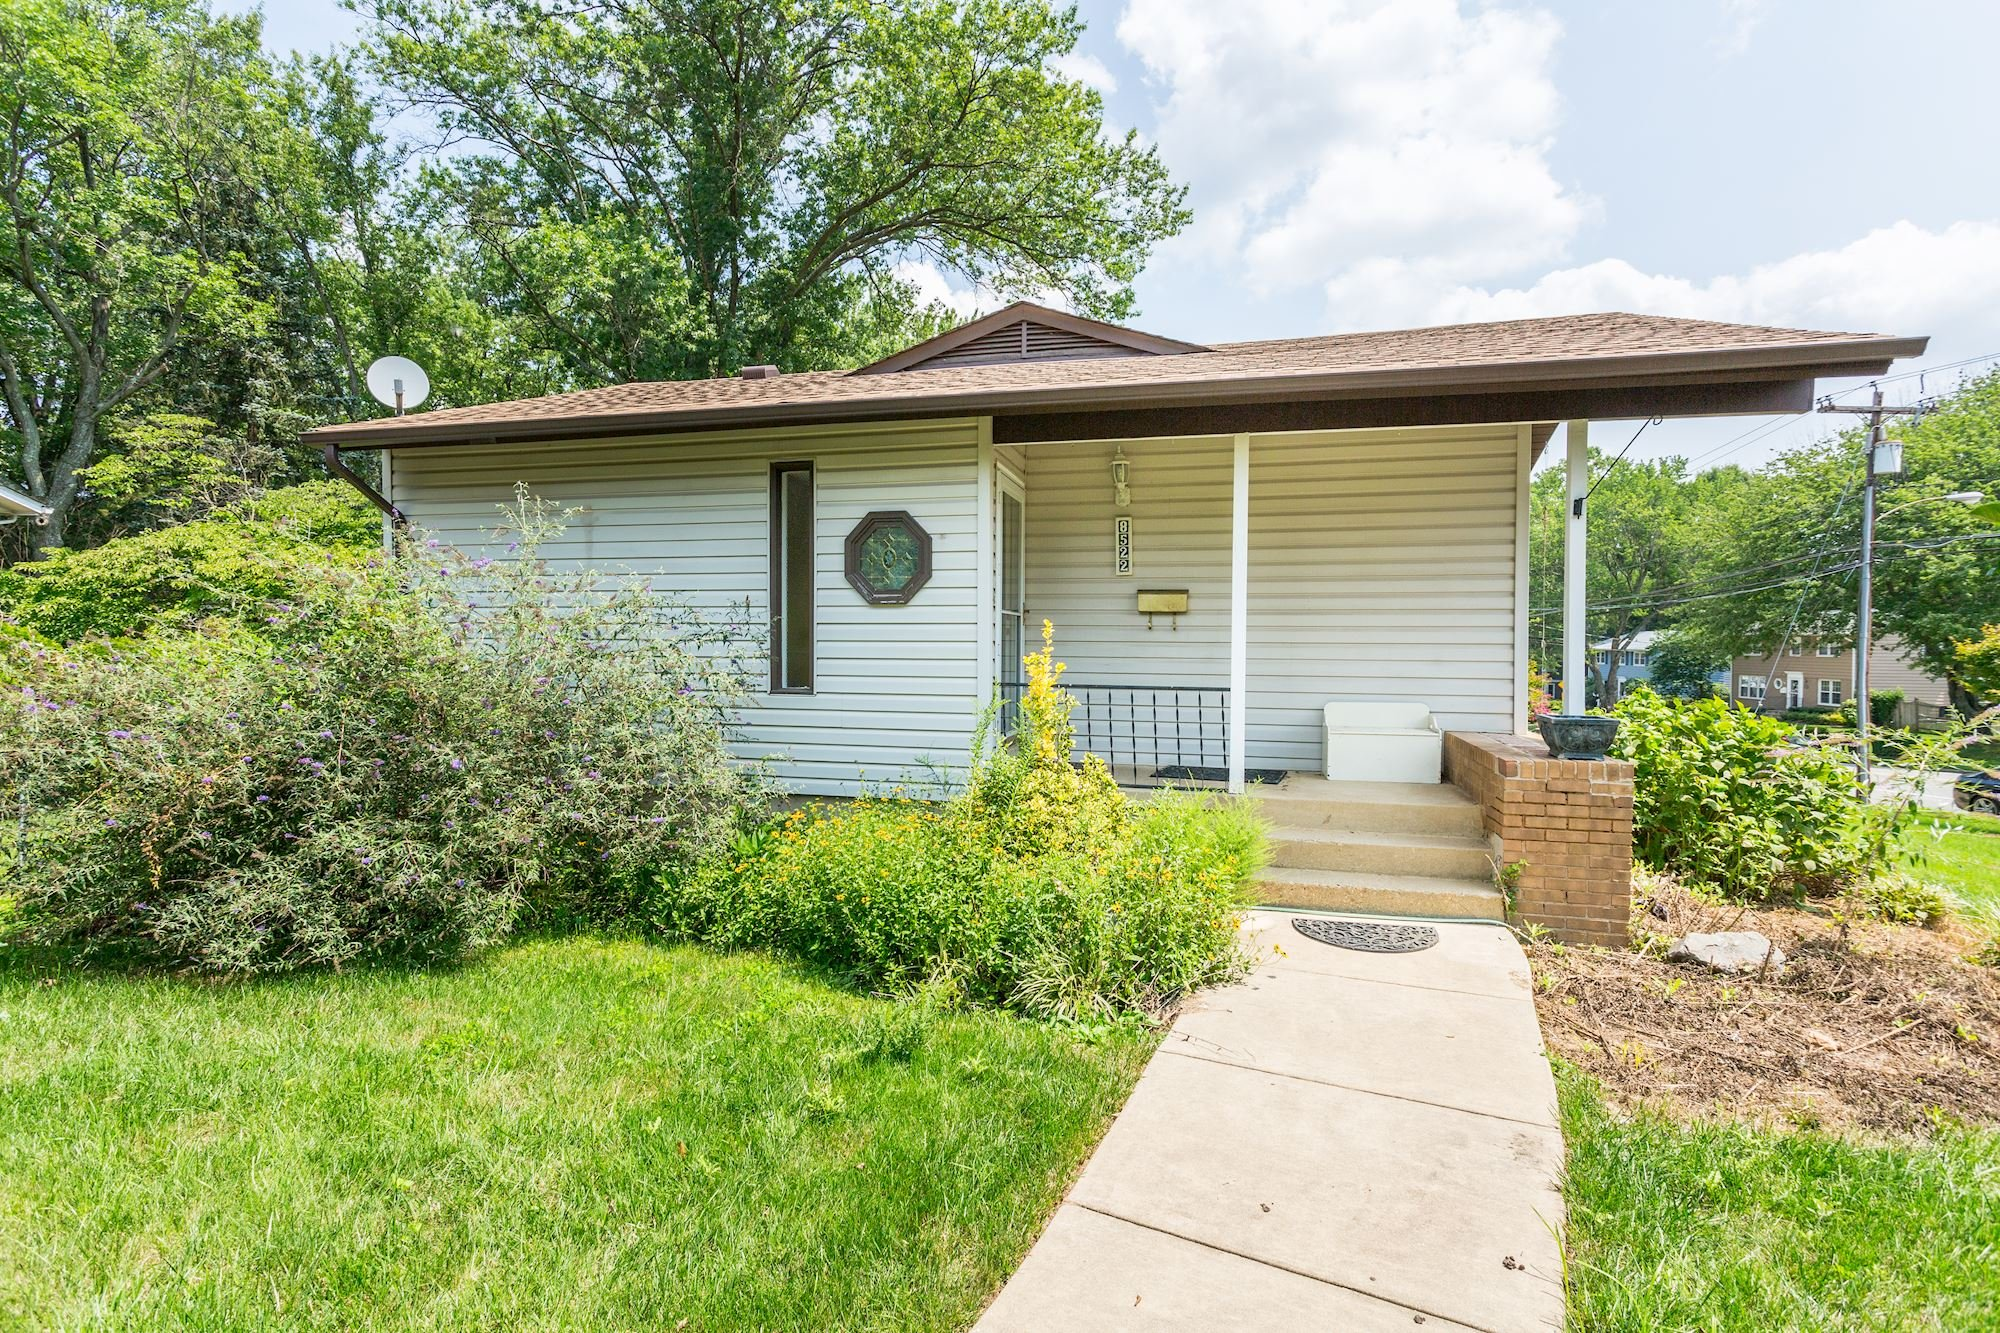 NEW LISTING: Rare 3 BD Beautifully Maintained Vienna Home